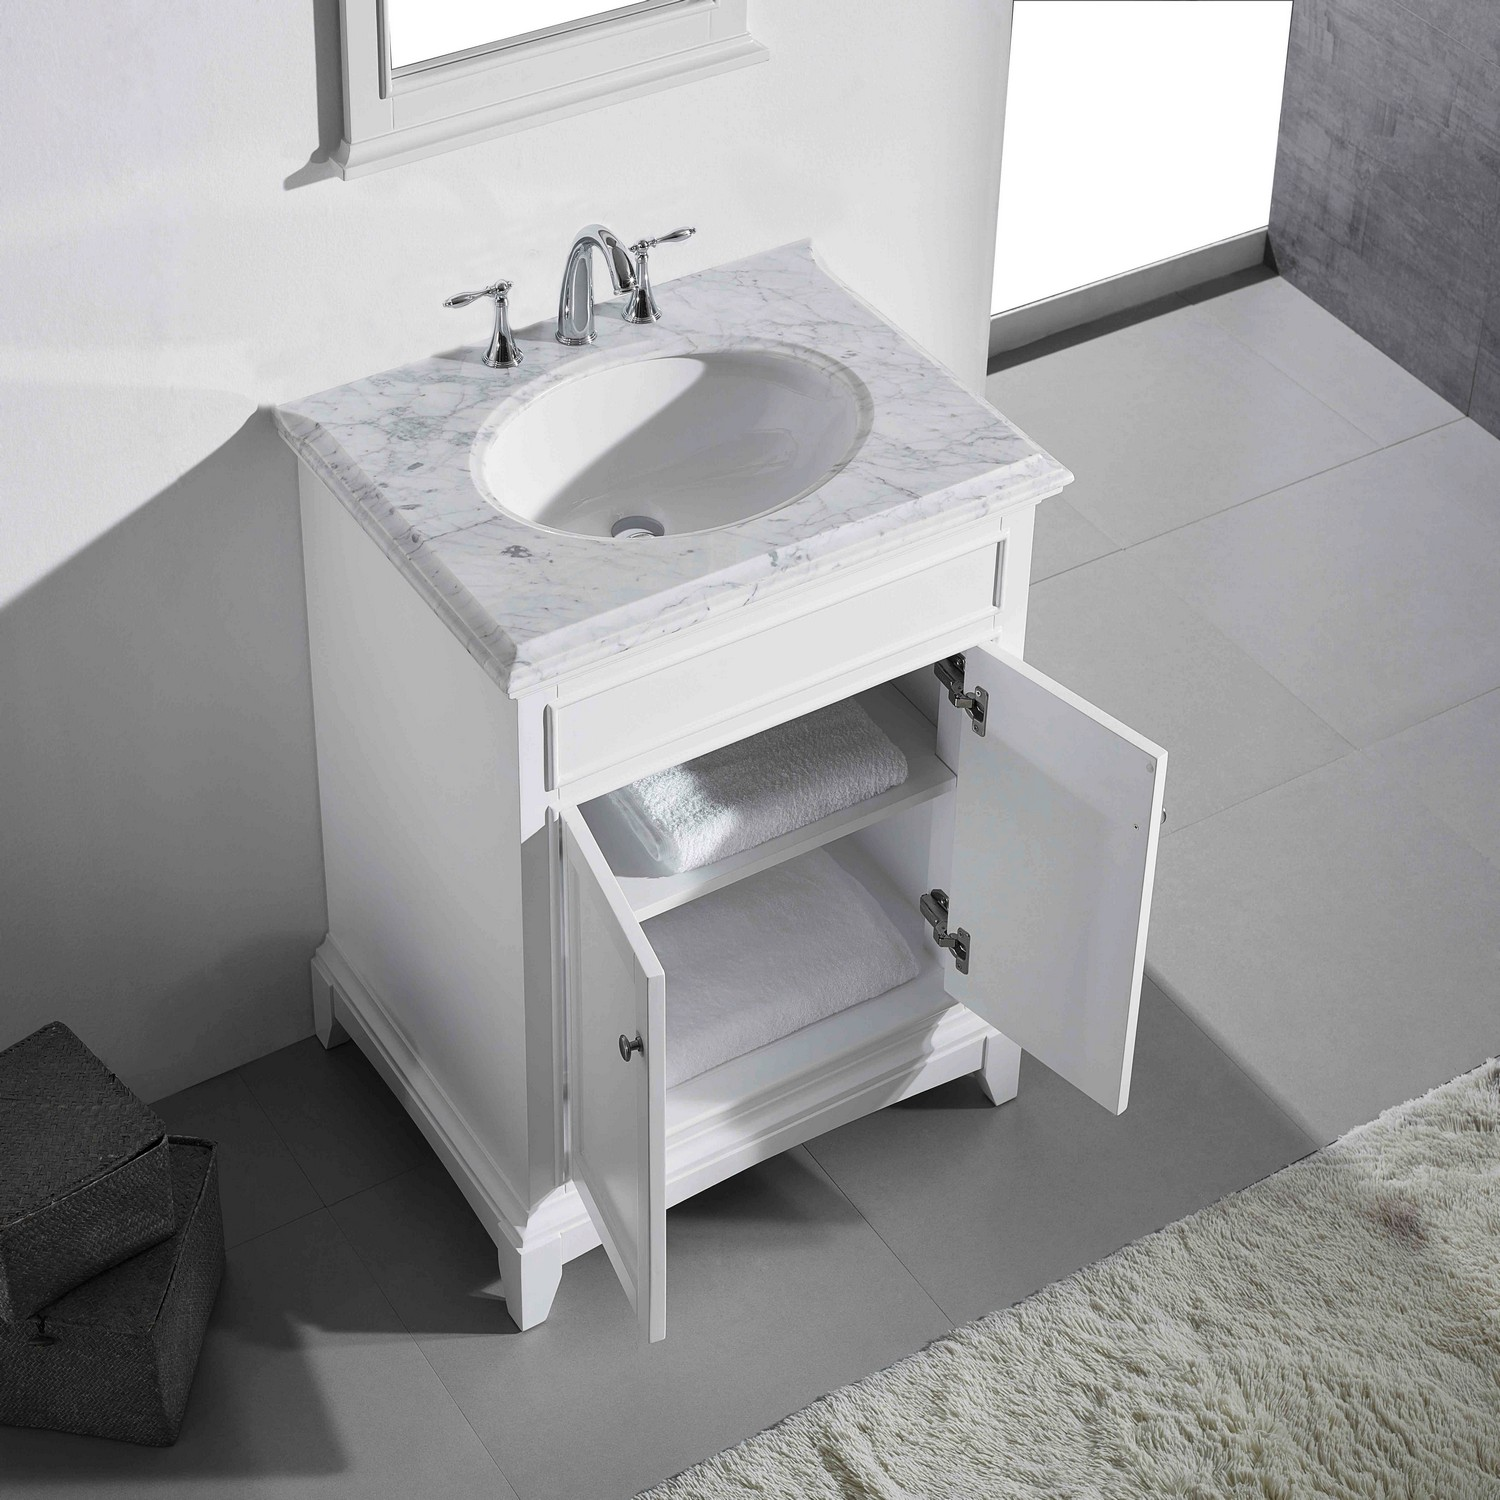 """EVVN709 30WH A Main - Eviva Elite Stamford 30"""" White Solid Wood Bathroom Vanity Set with Double OG White Carrera Marble Top & White Undermount Porcelain Sink"""